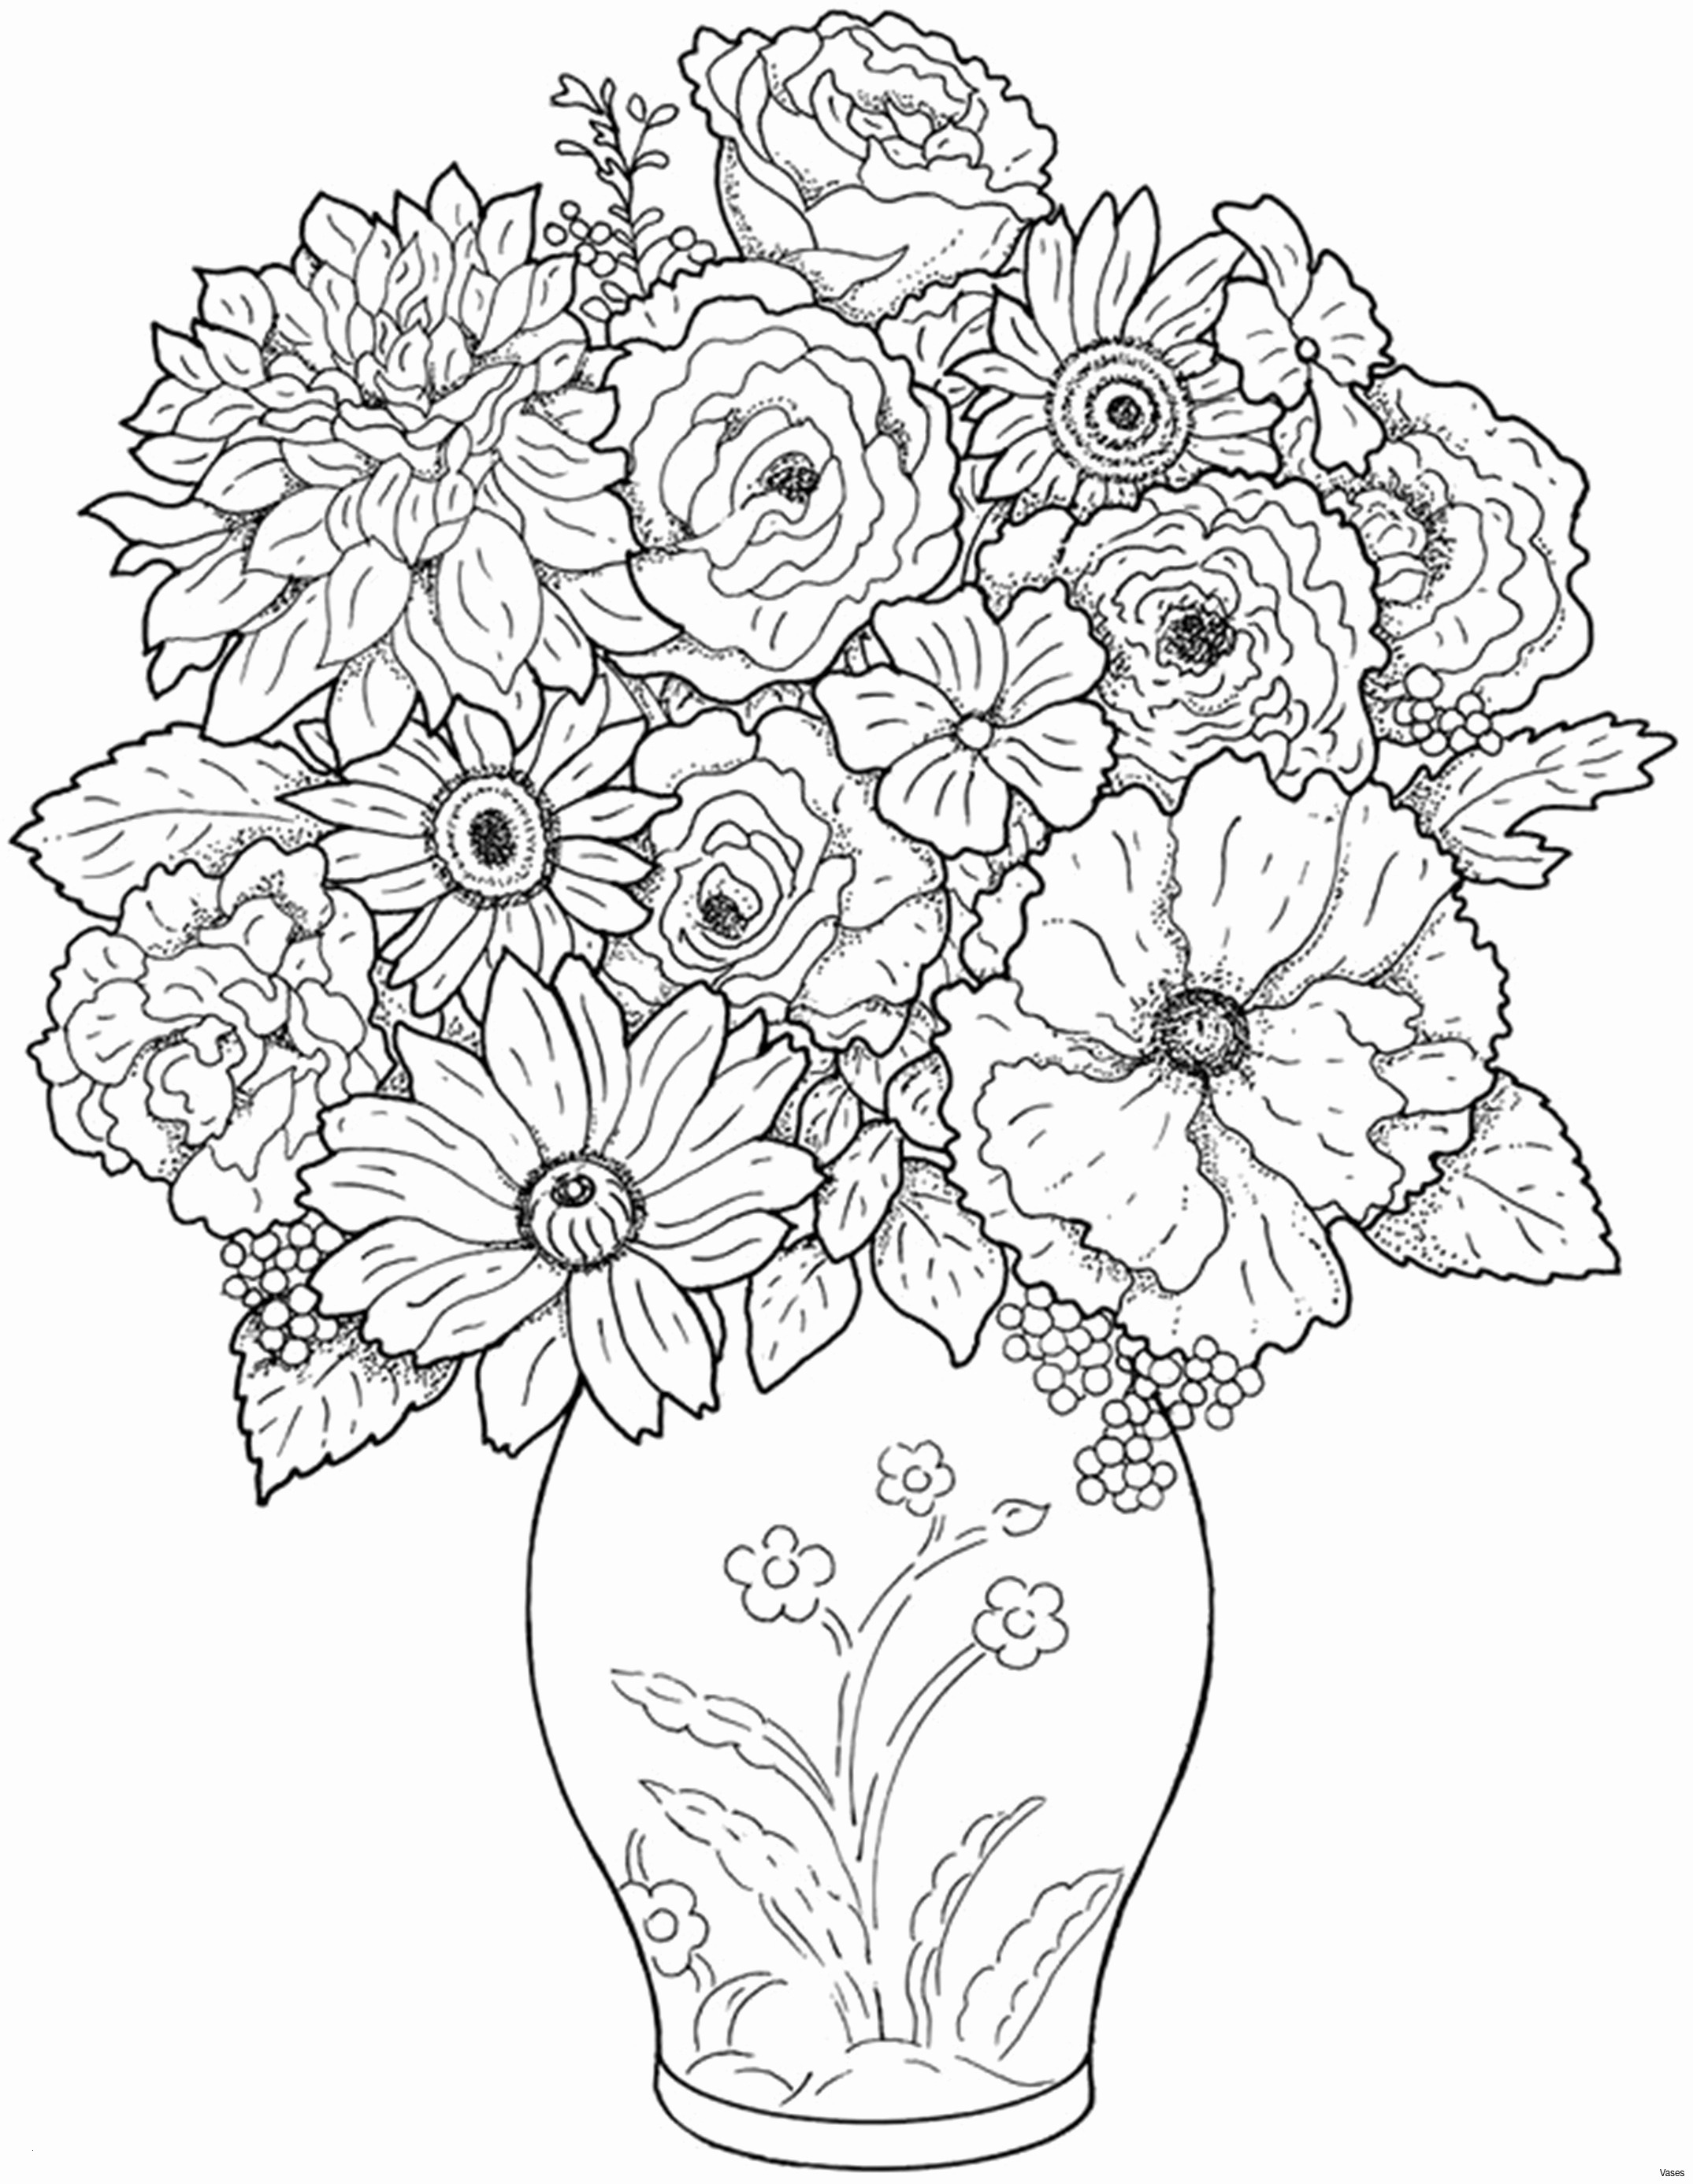 Herbs Coloring Pages  Gallery 11p - Save it to your computer